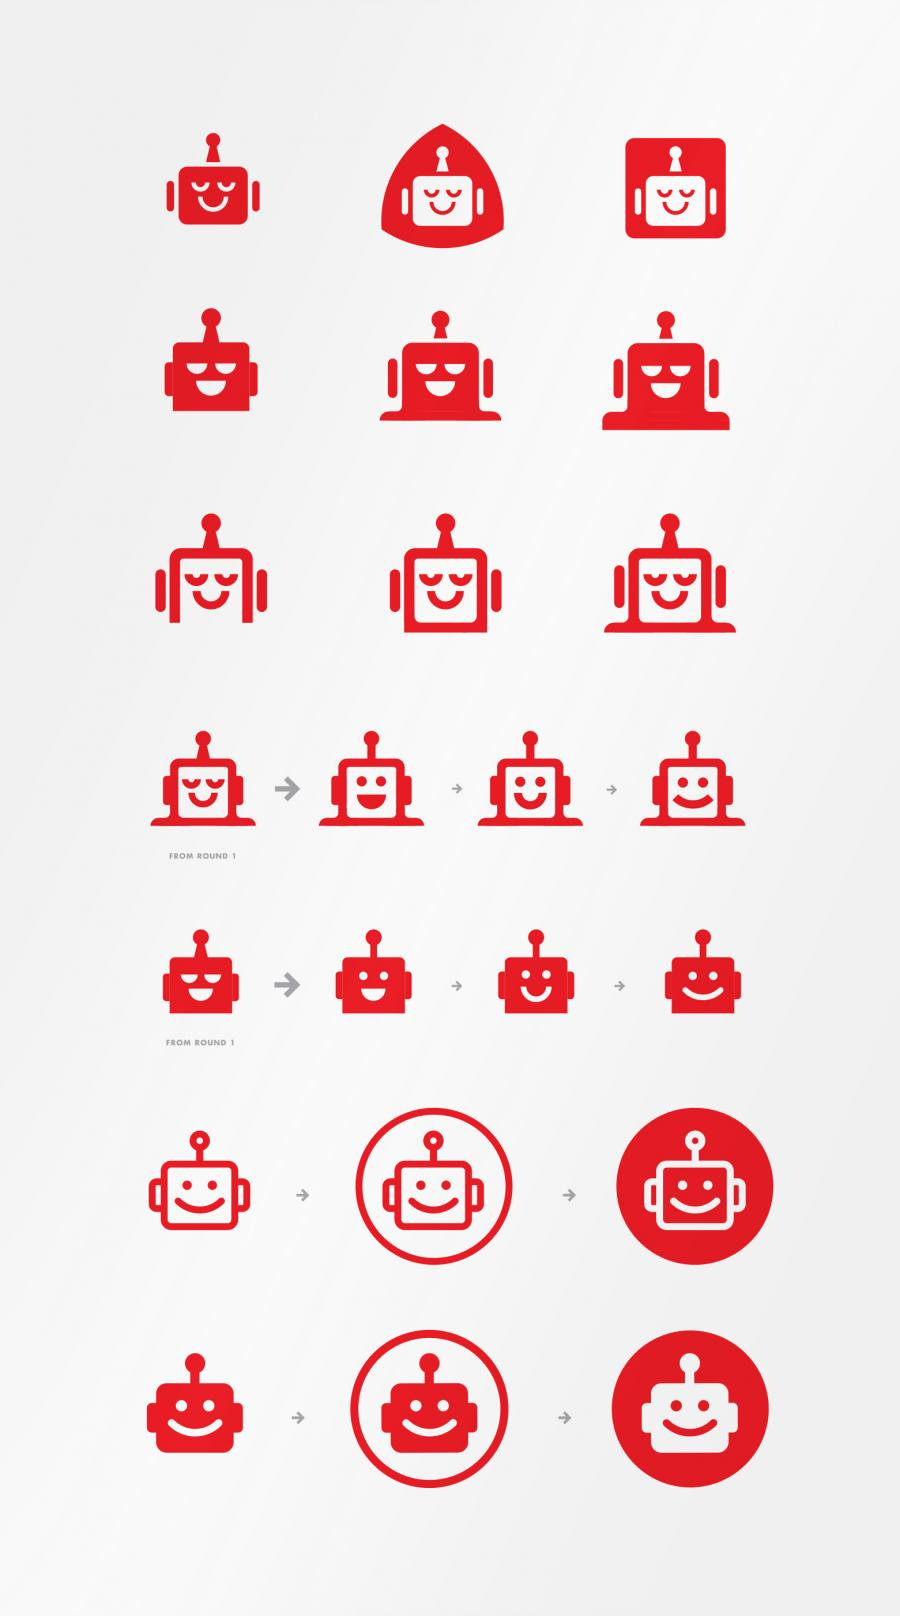 Lullabot logo explorations by Aaron Draplin